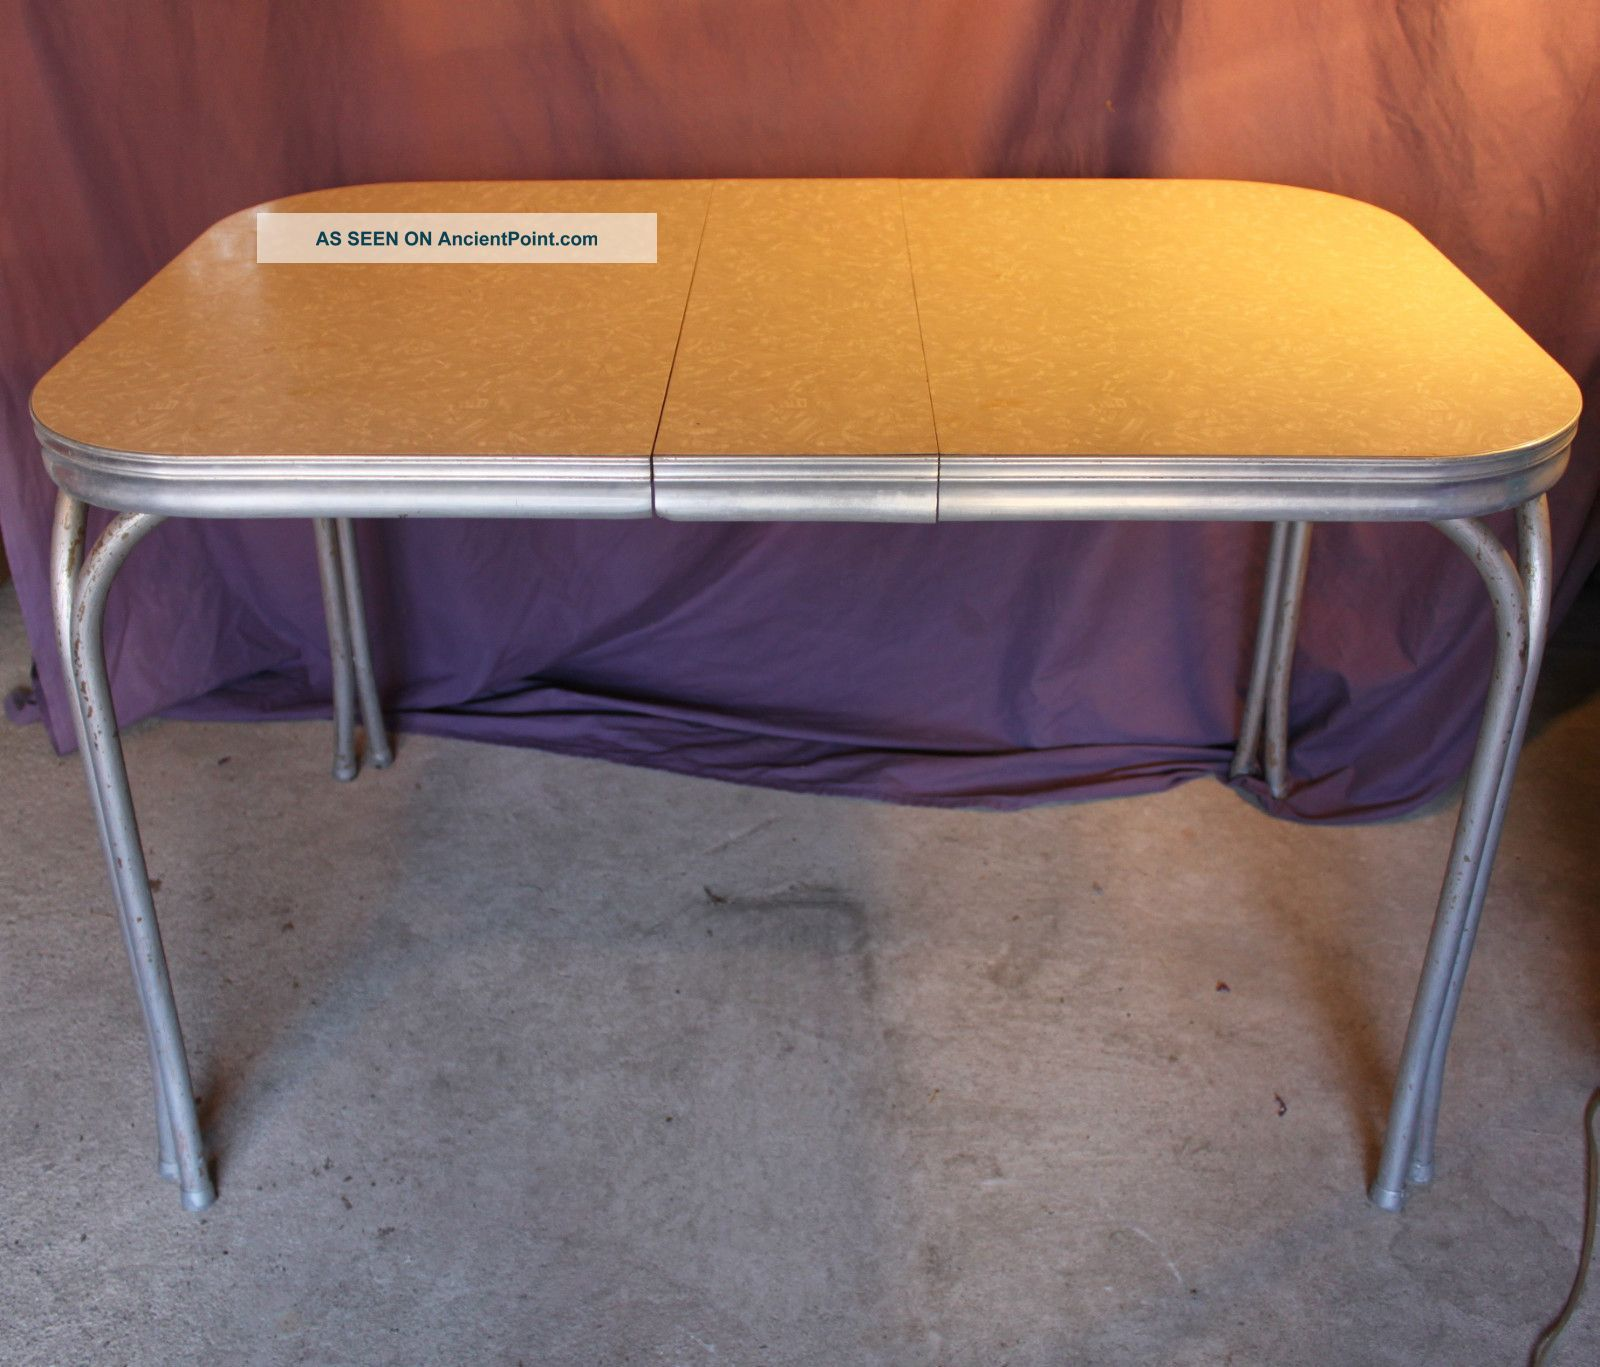 Vintage Retro 1950 U0027 S Mid   Century Diner Kitchen Table Formica Silver  Metal Chrome Photos And Information In AncientPoint